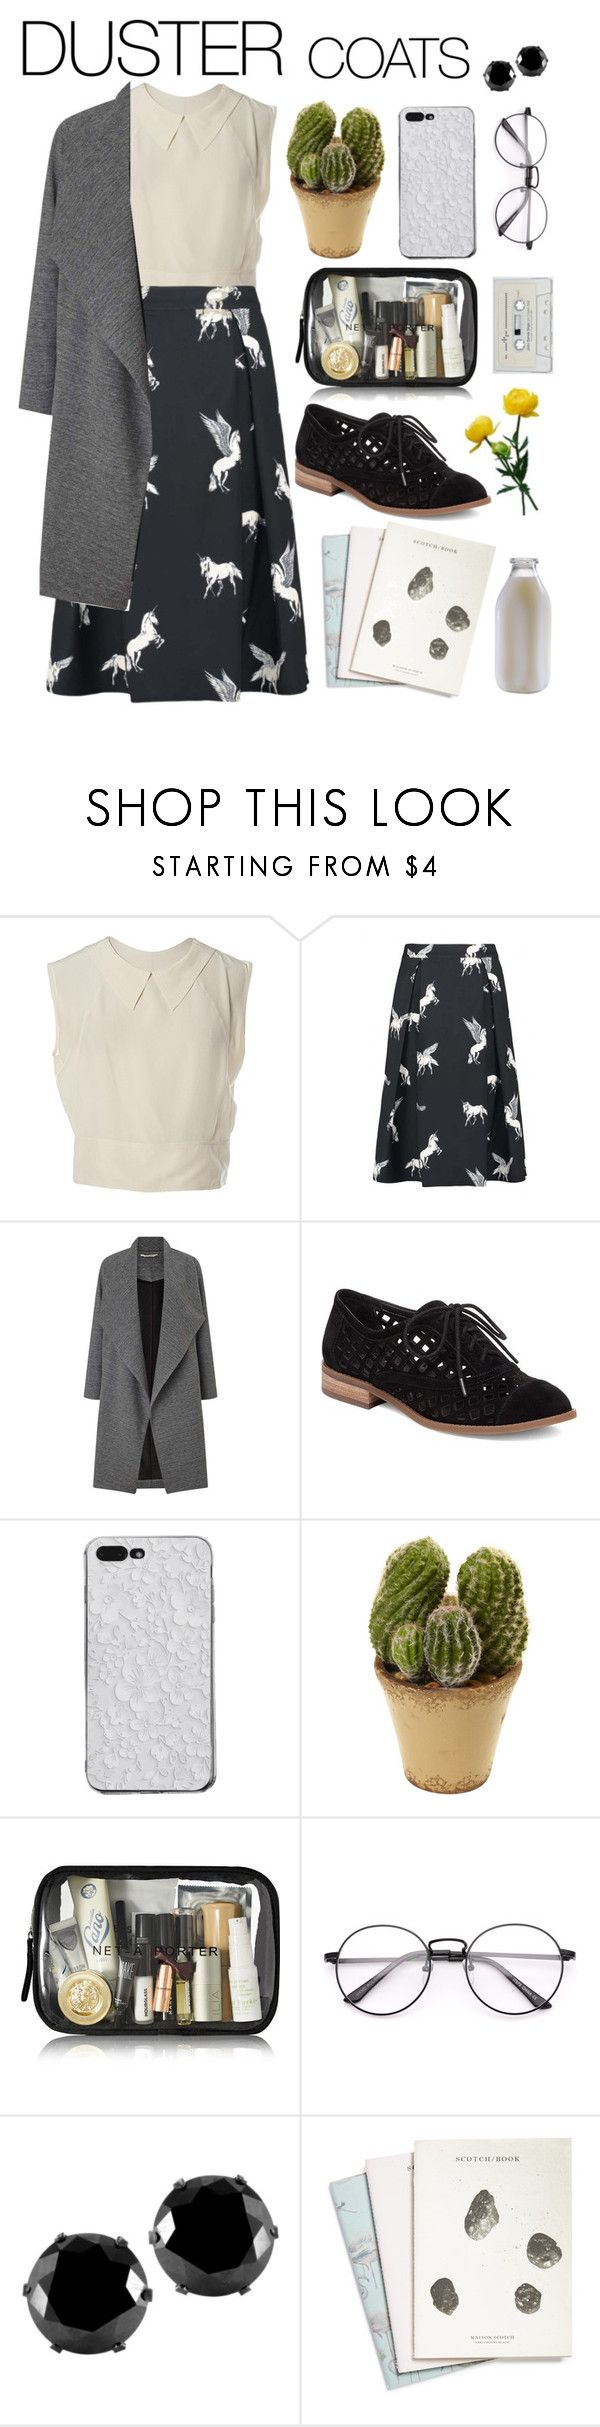 """""""Untitled #525"""" by nerdyquirkystyle ❤ liked on Polyvore featuring Chanel, Sugarhill Boutique, Miss Selfridge, Jessica Simpson, Nearly Natural, West Coast Jewelry and Maison Scotch"""